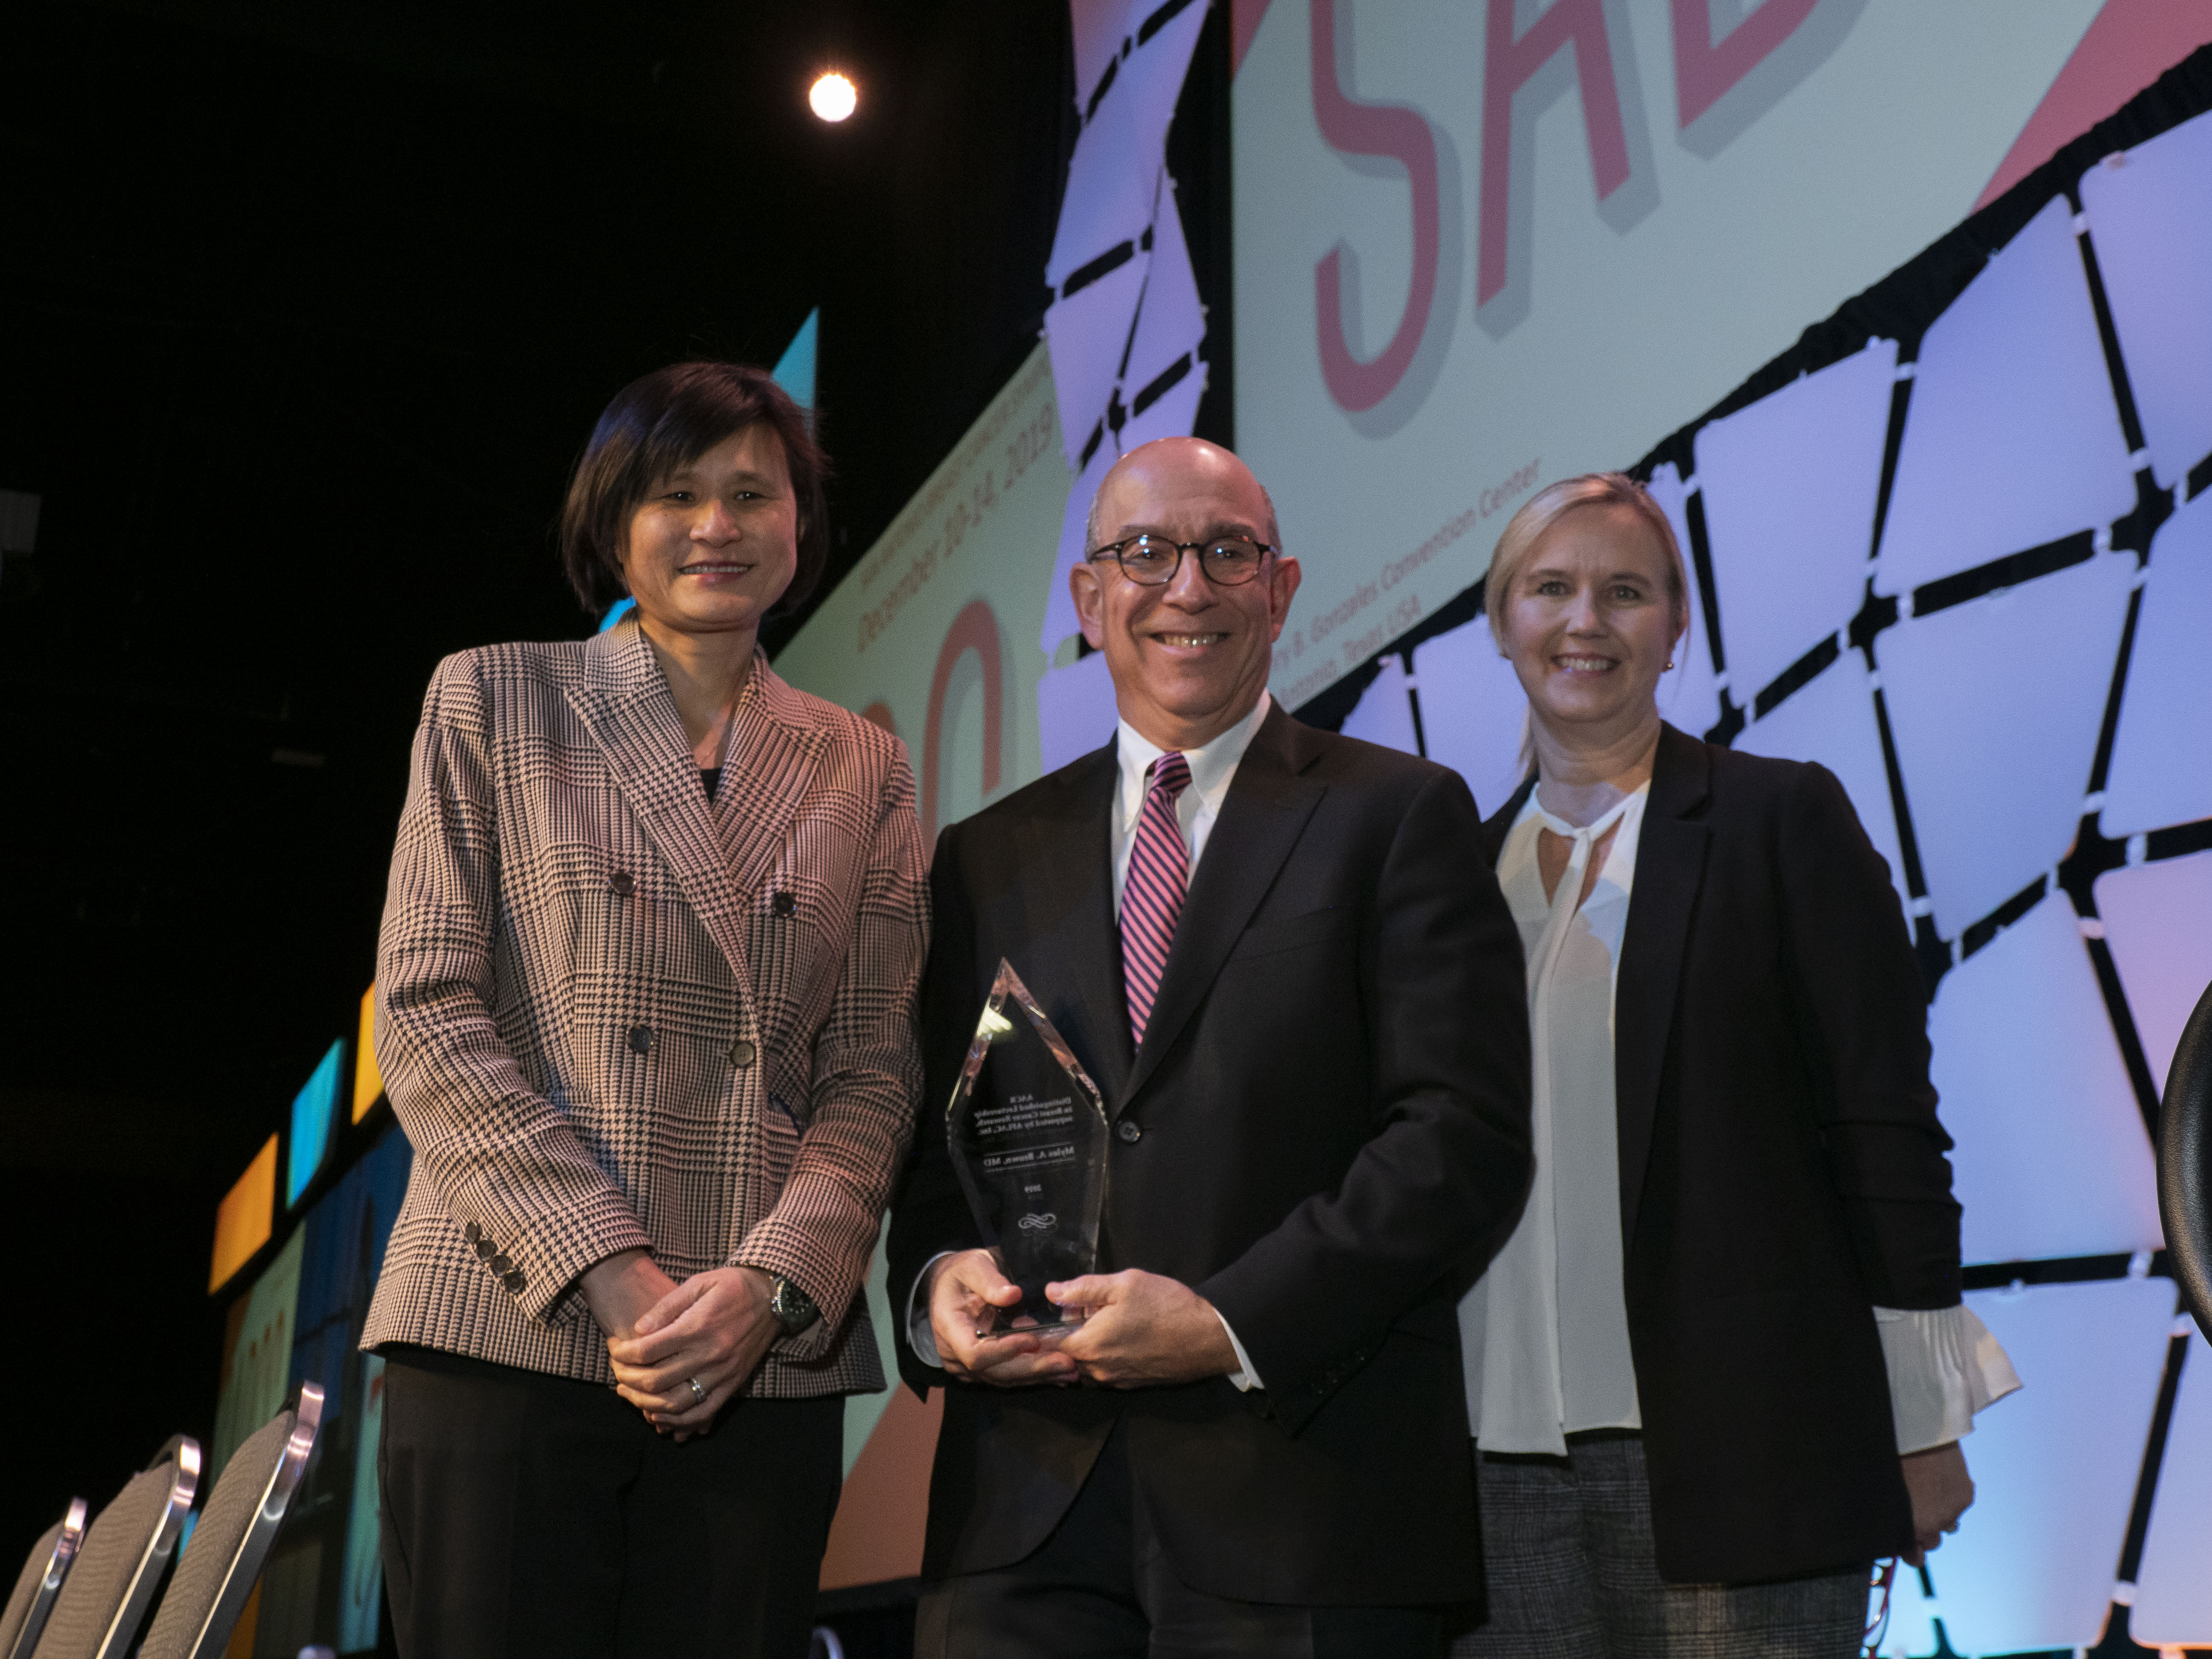 BCRF Researchers Honored at the 2019 San Antonio Breast Cancer Symposium